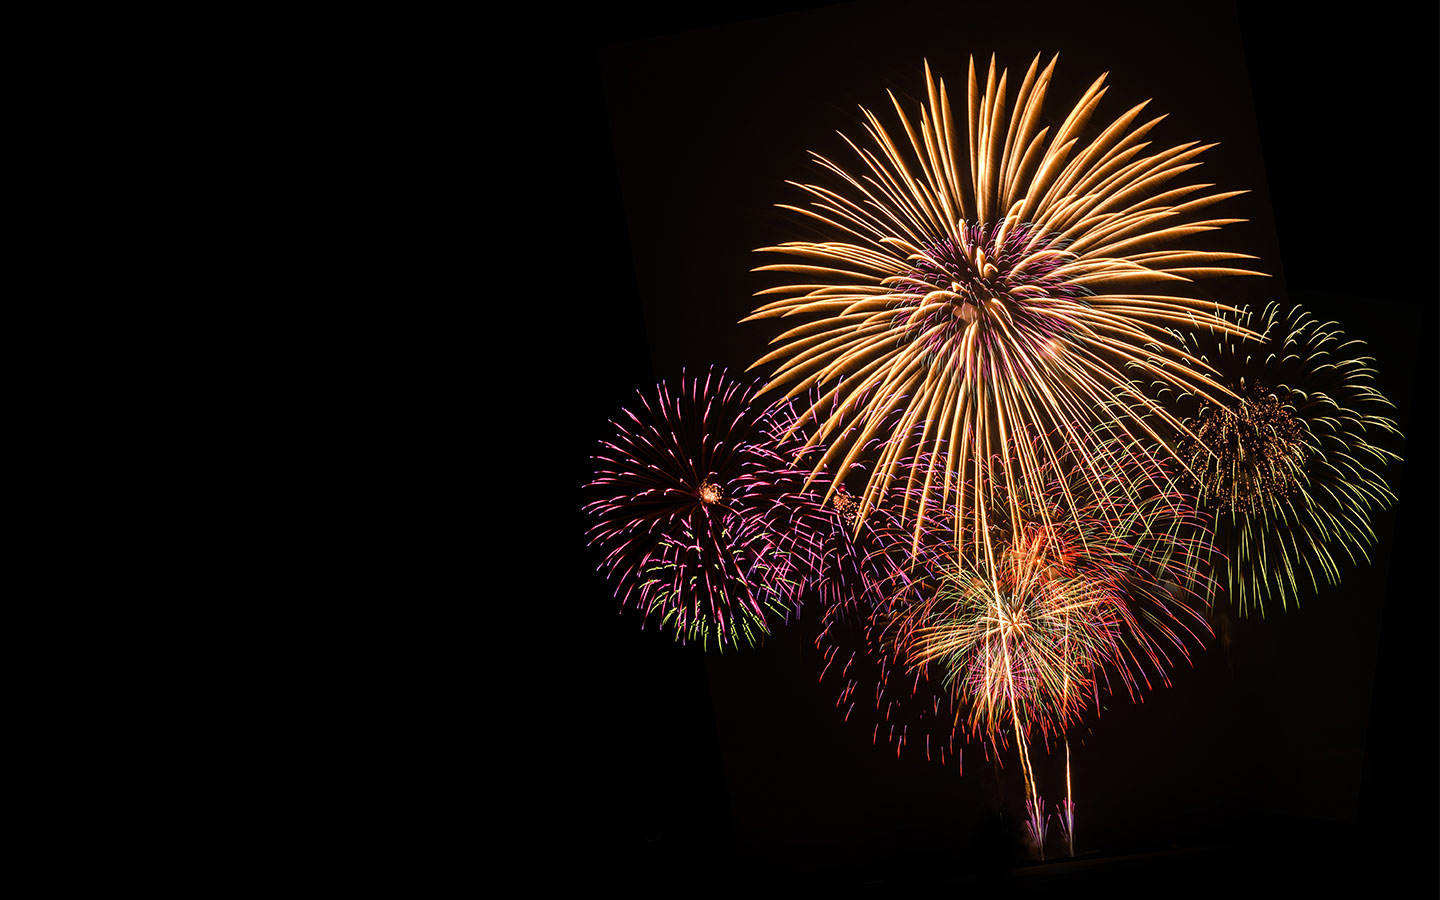 View of fireworks displays in the sky